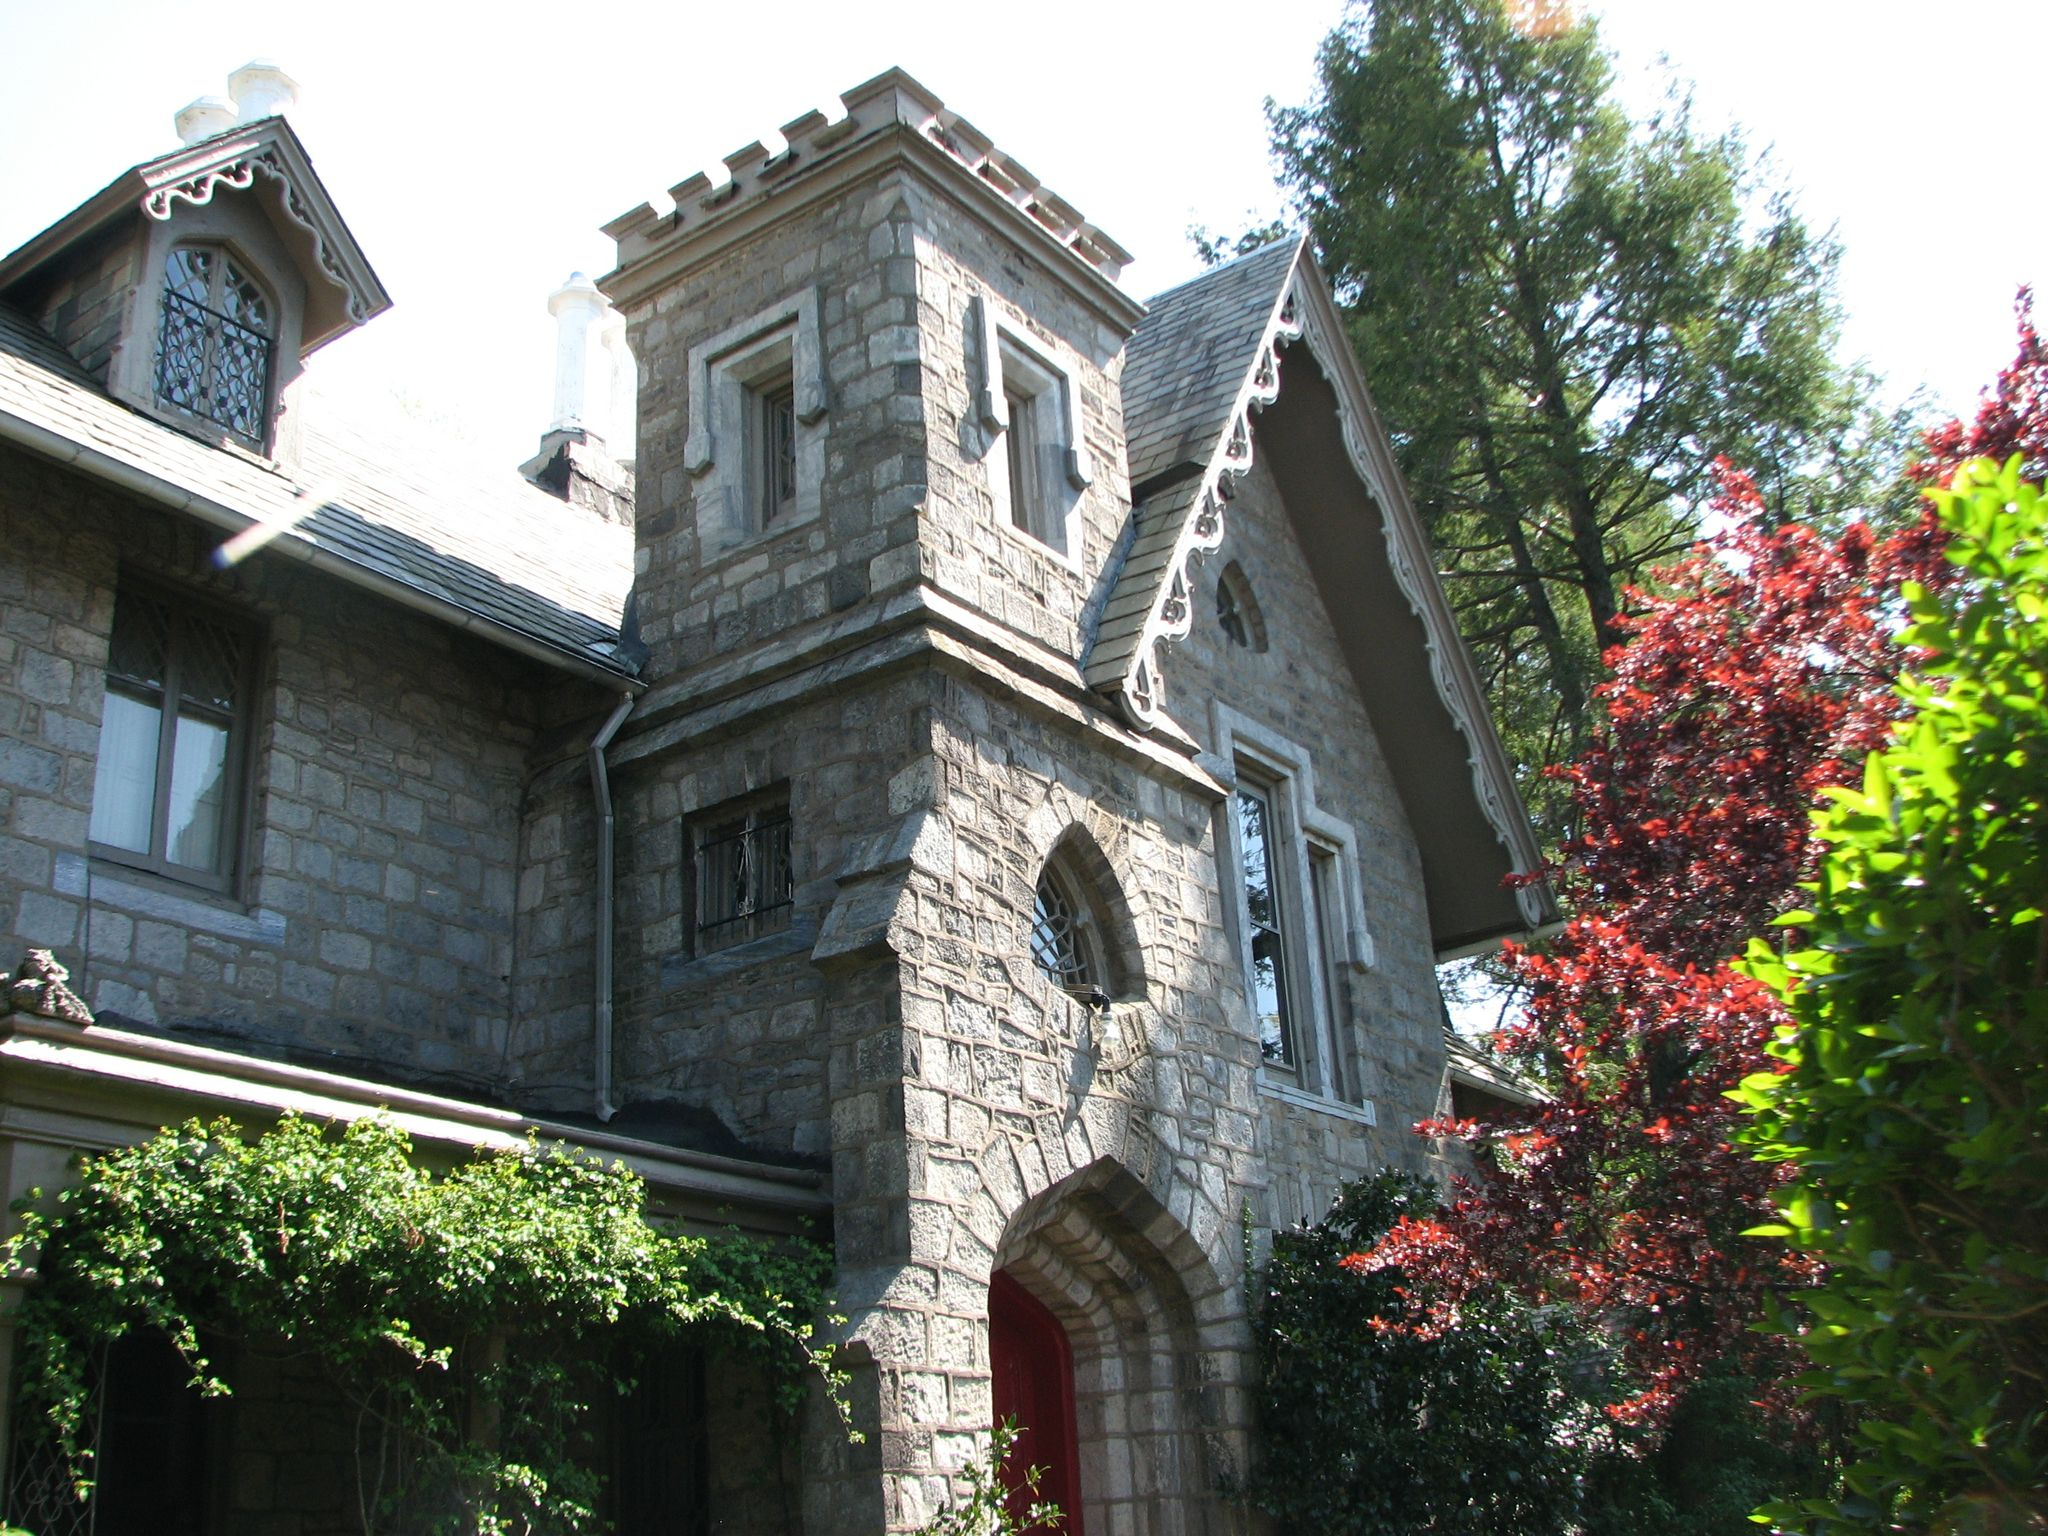 The Mitchell House is attributed to architect Samuel Sloan.